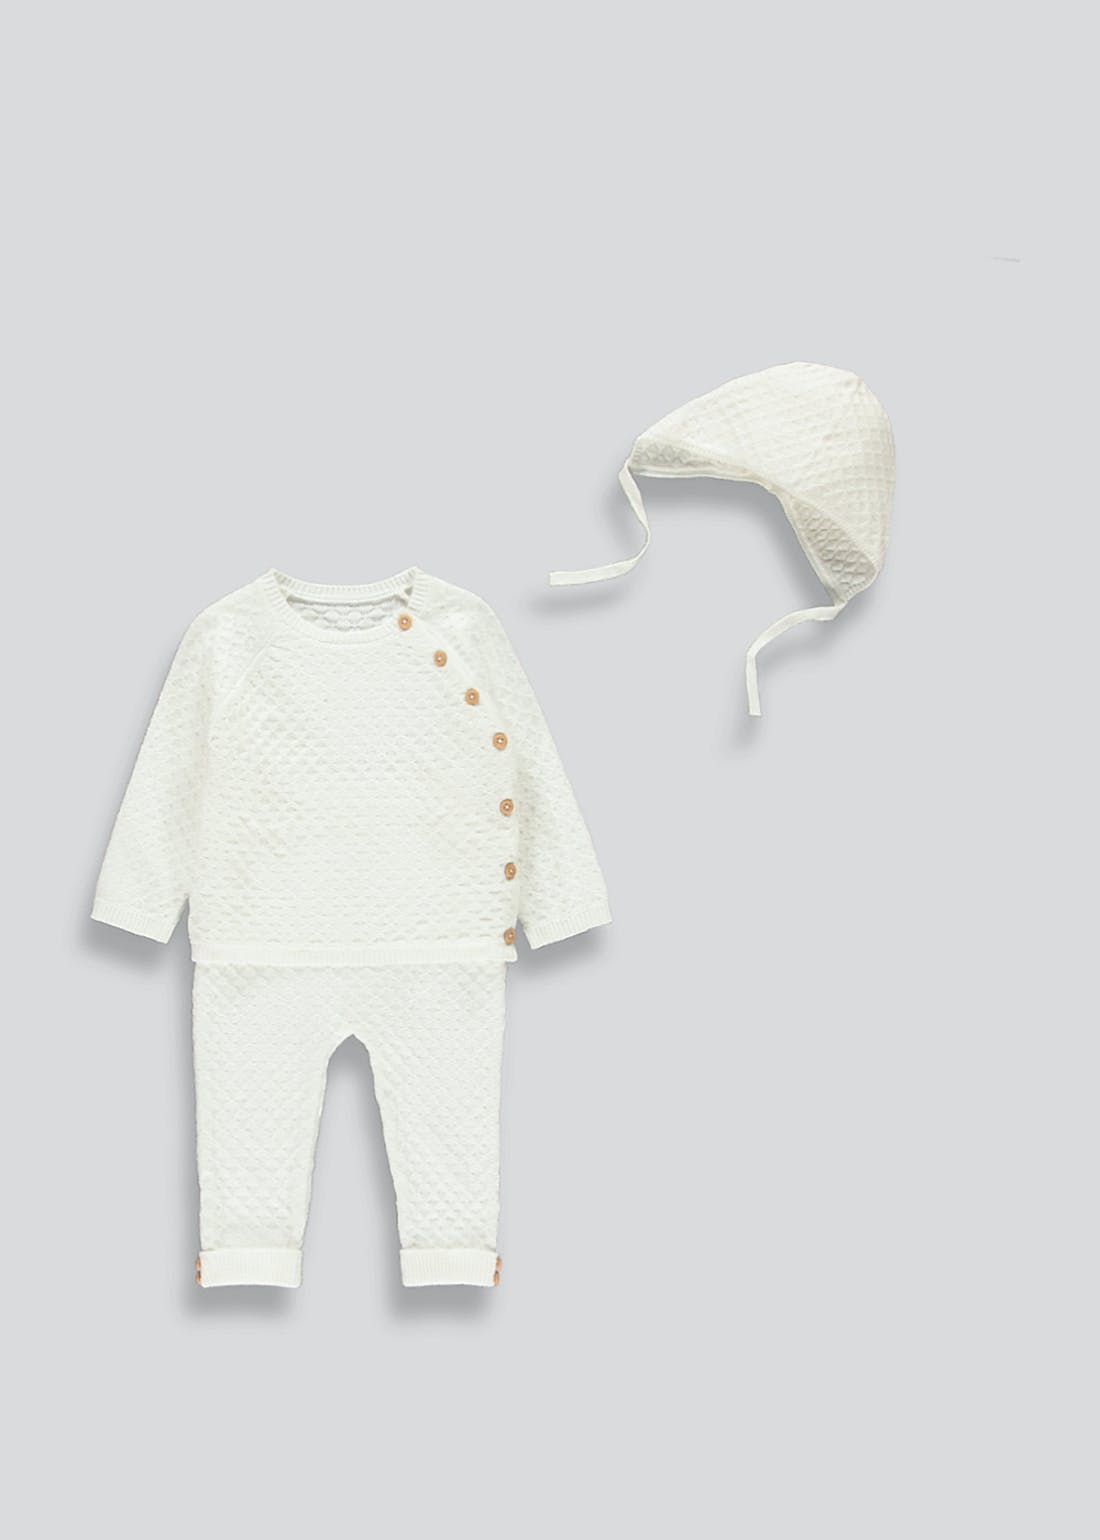 Unisex Knitted Set & Bonnet (Tiny Baby-23mths)